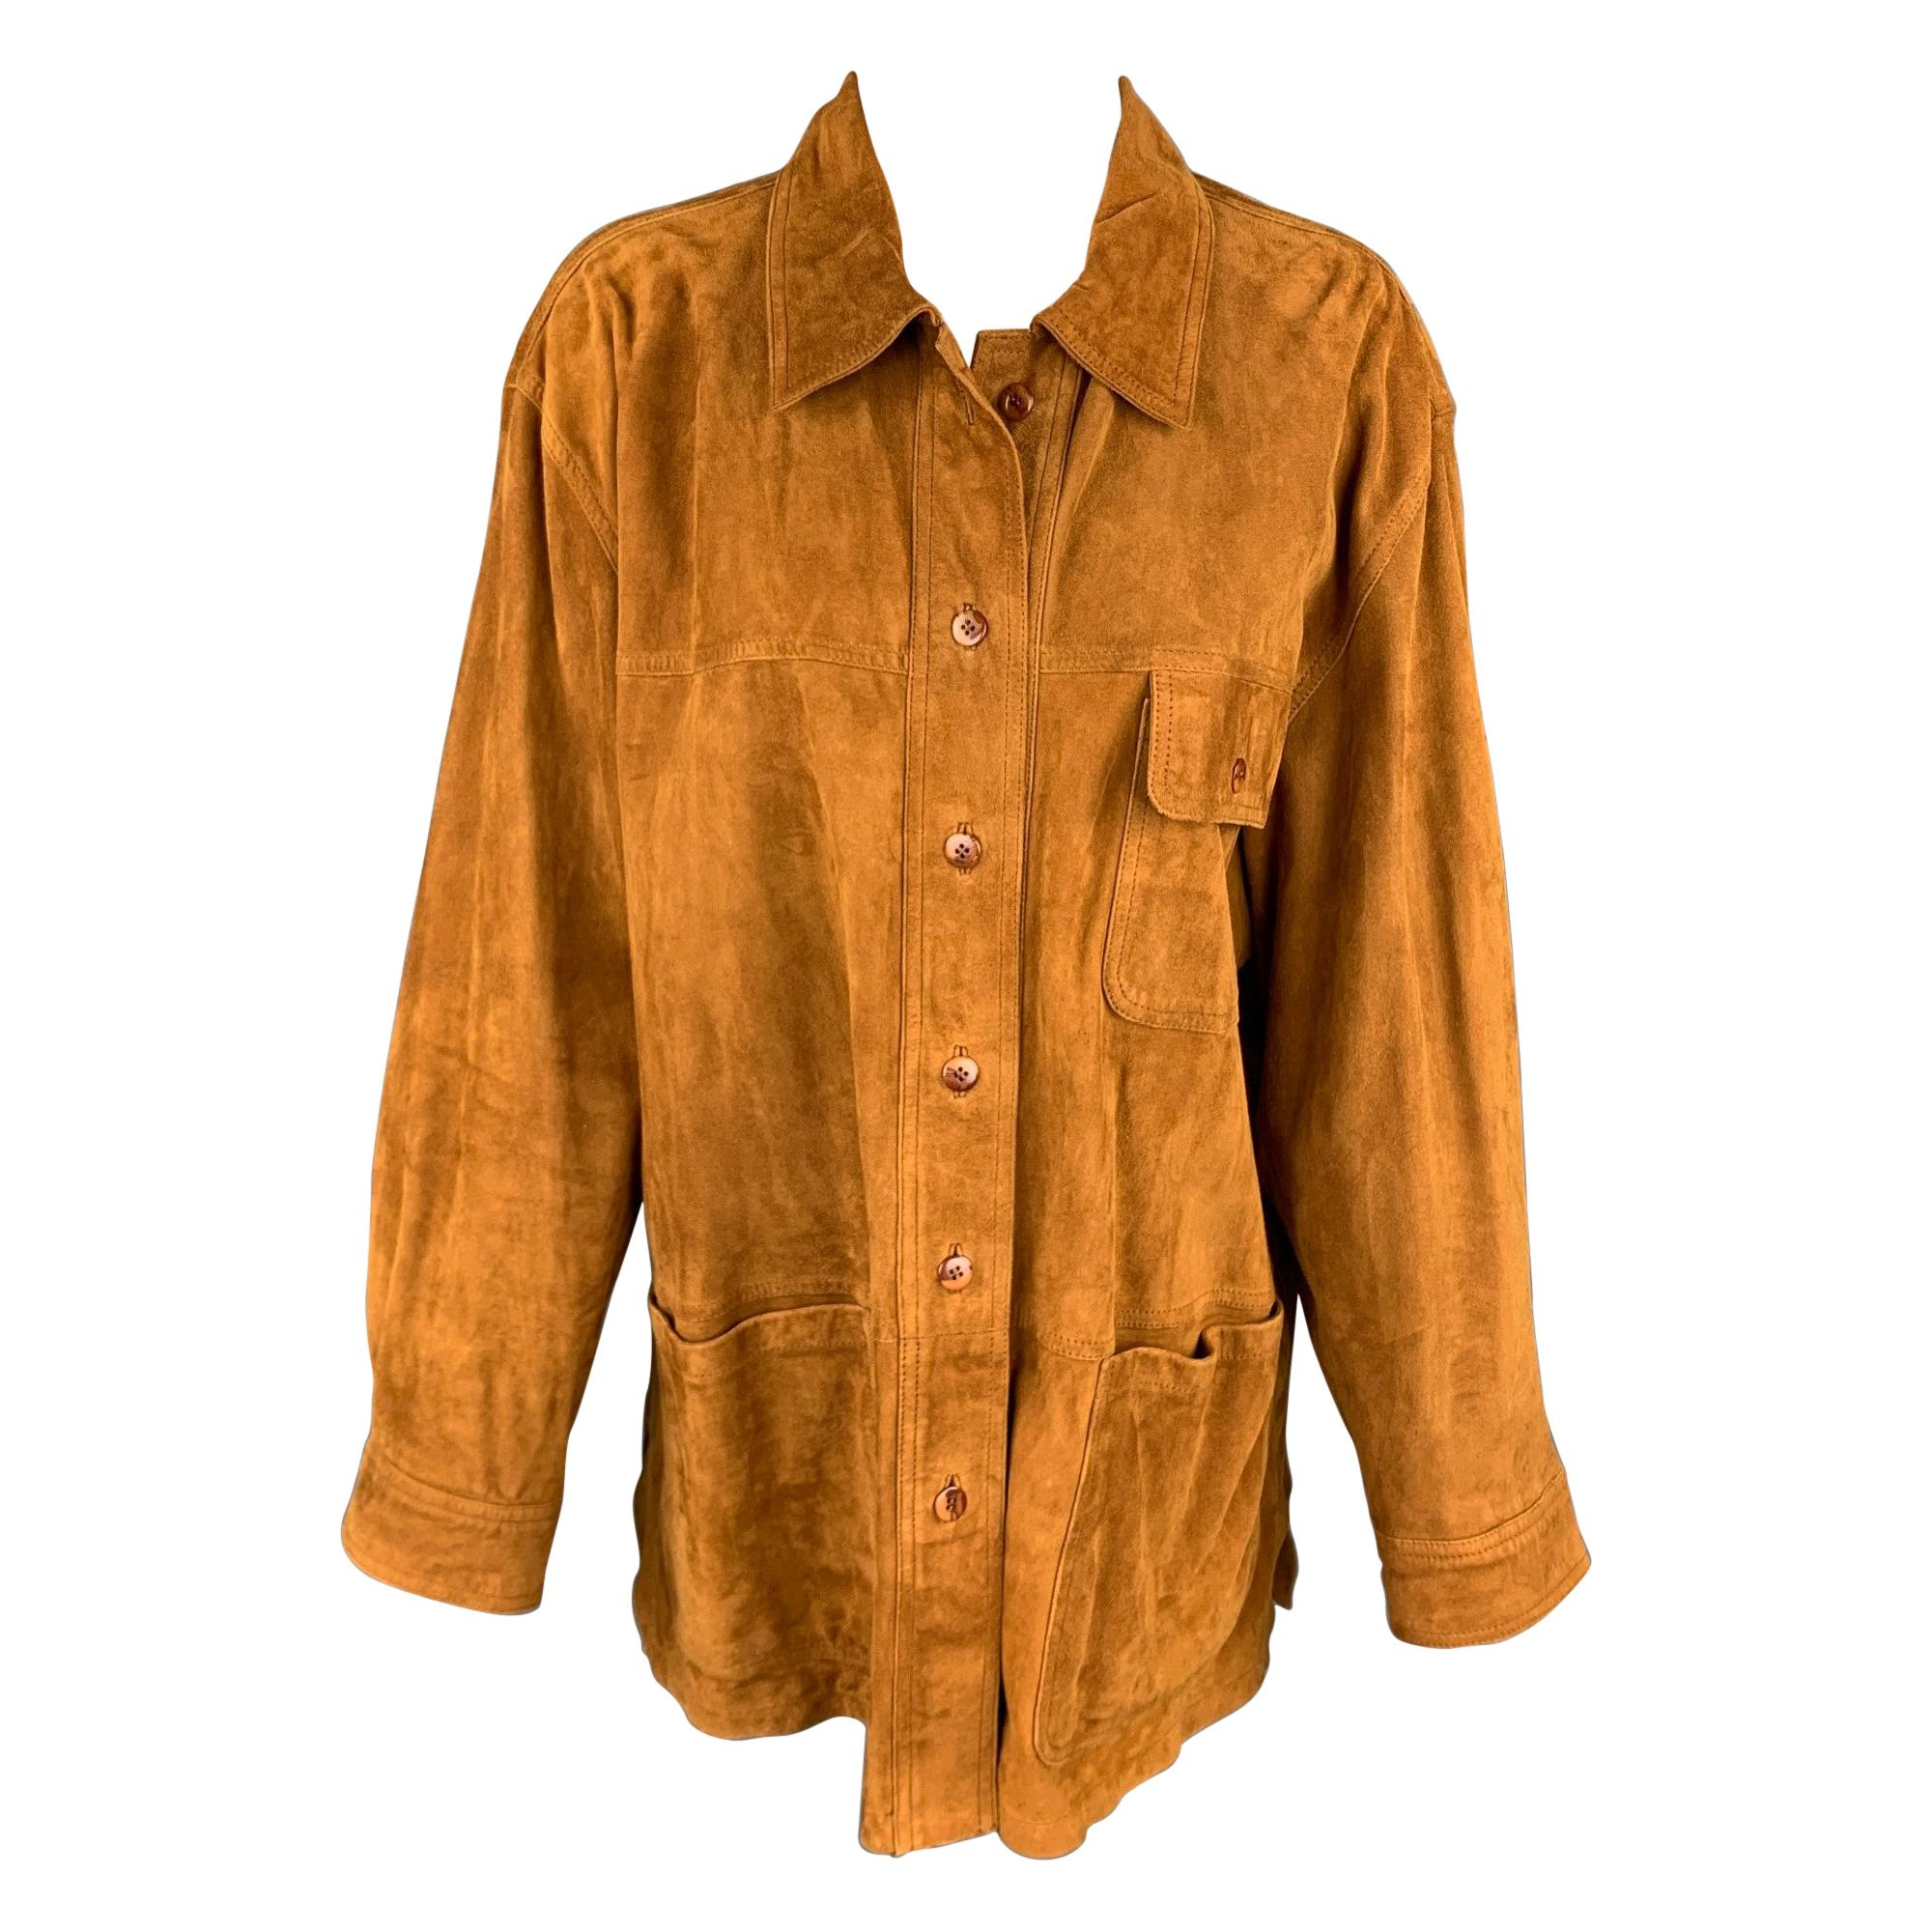 YORK Size 12 Camel Suede Patch Pockets Buttoned Jacket